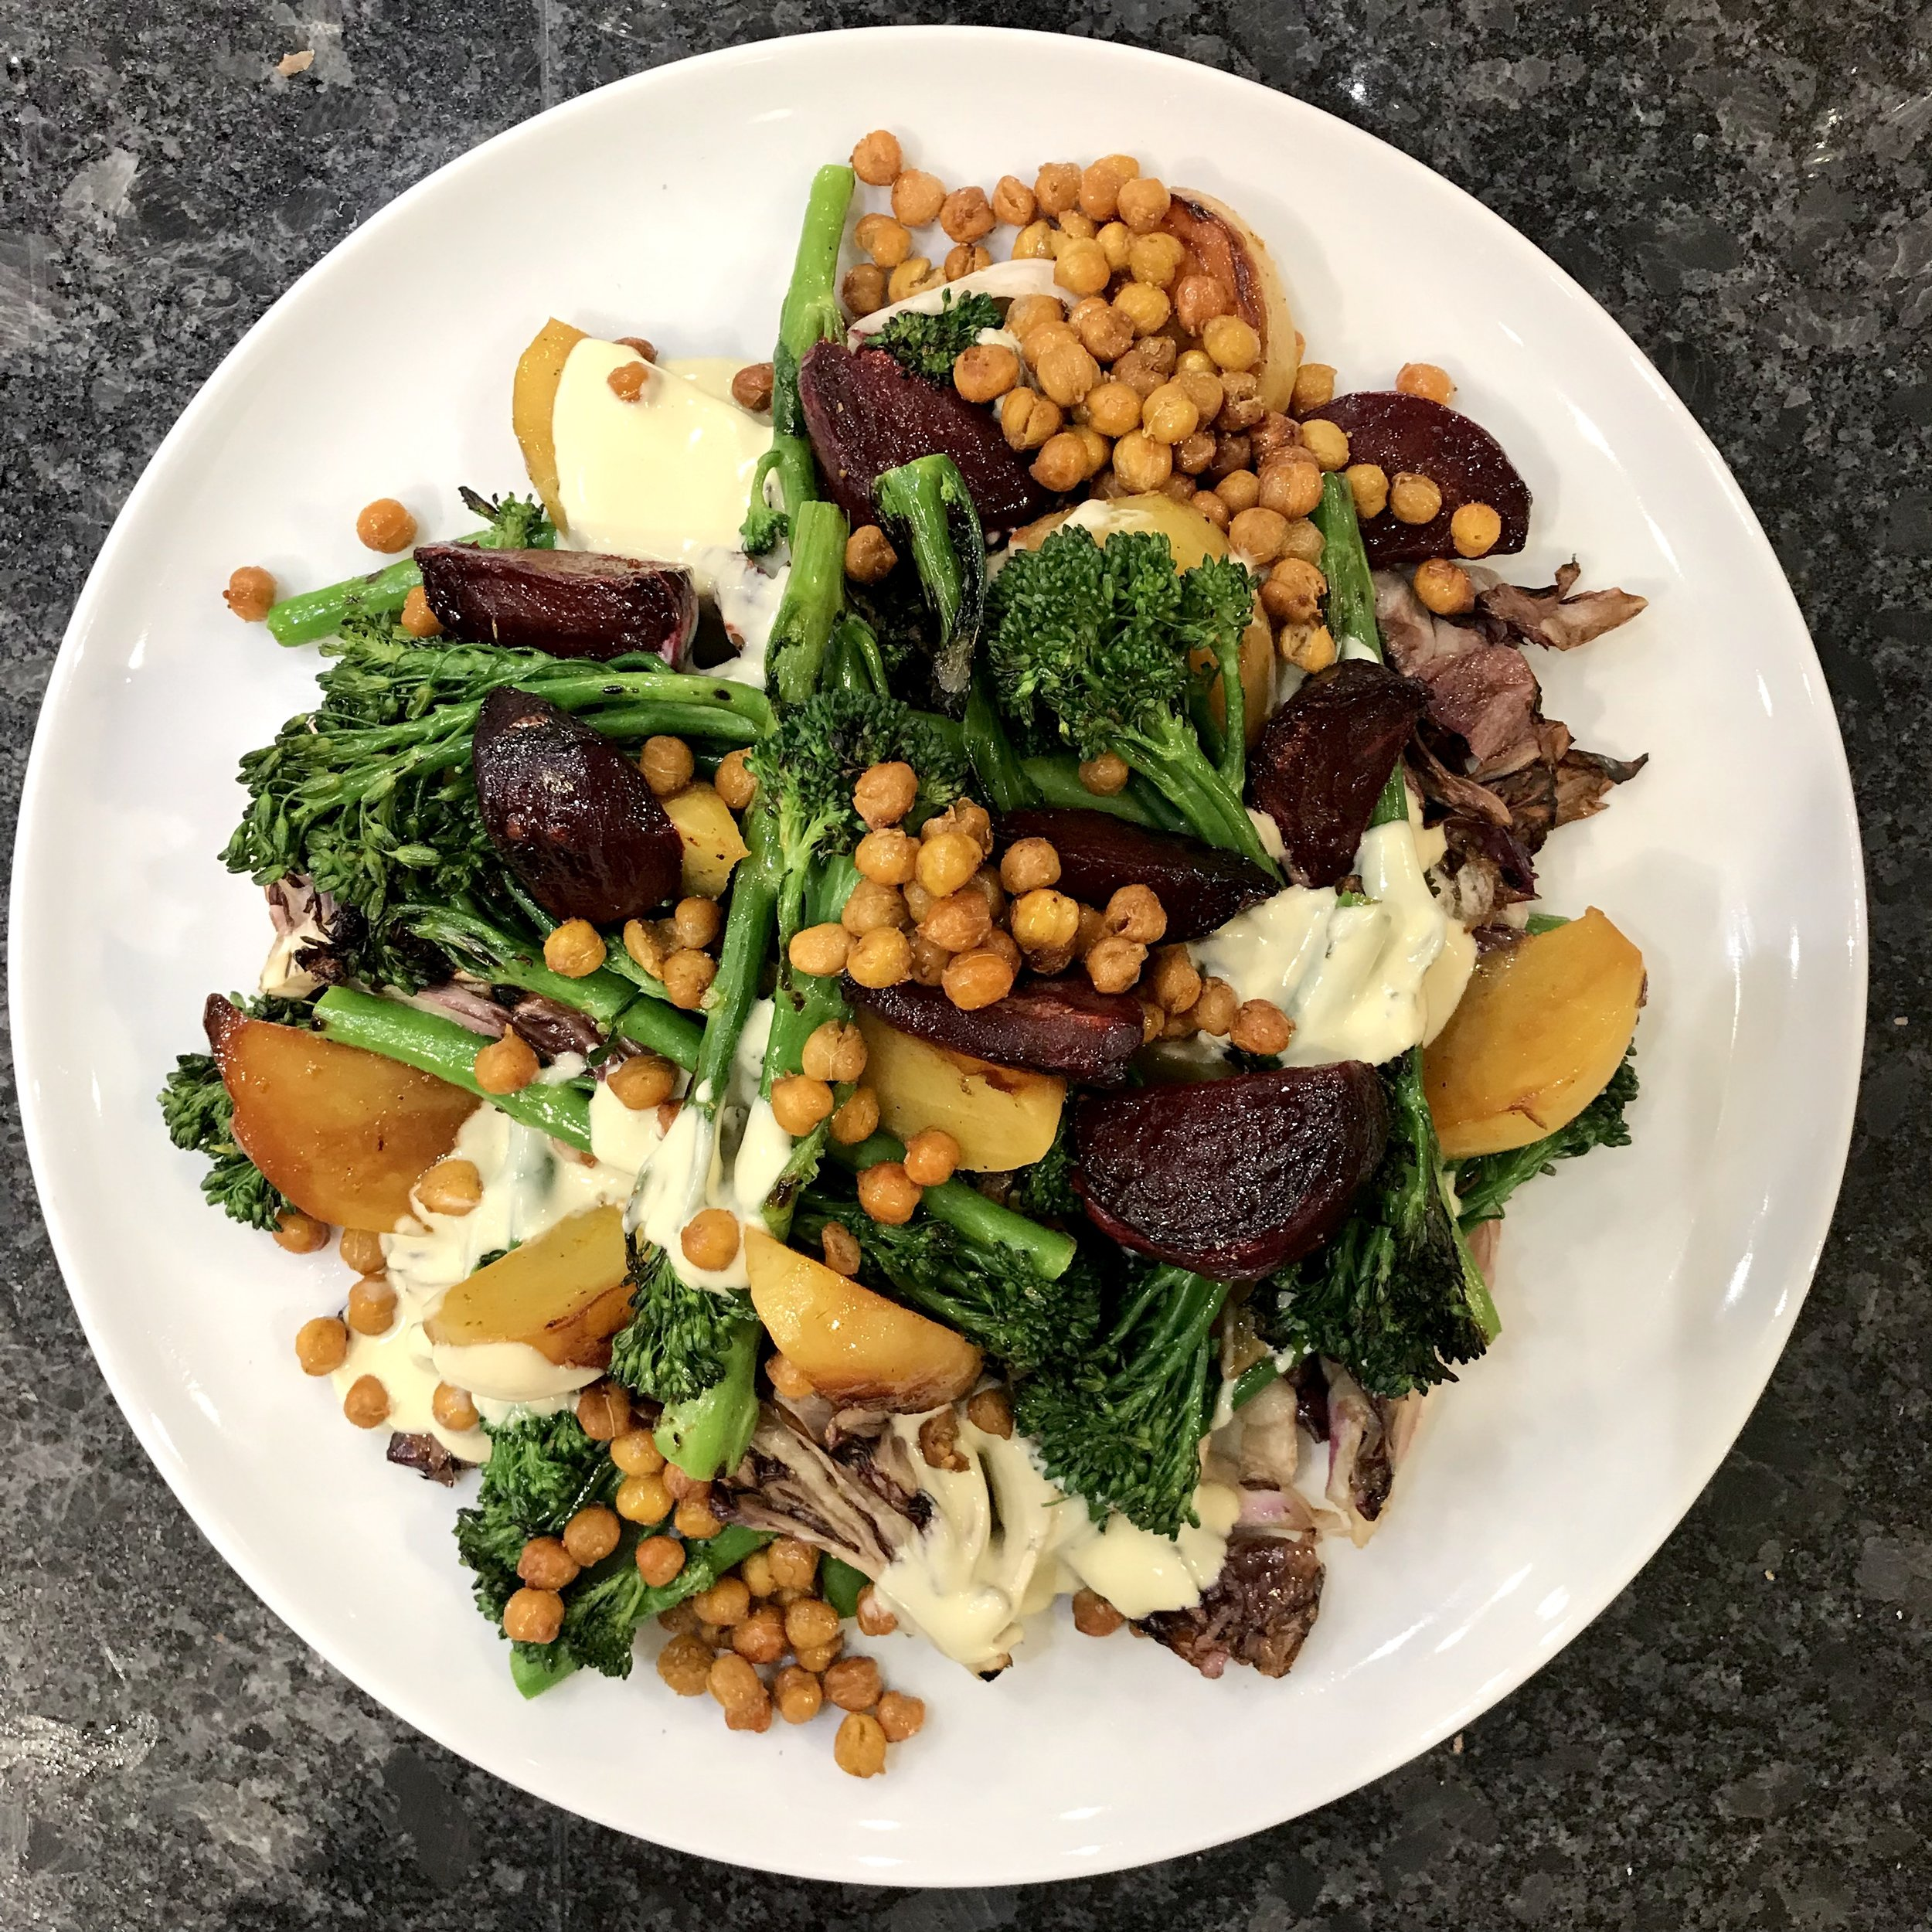 Roasted beets and broccoli with crispy chickpeas